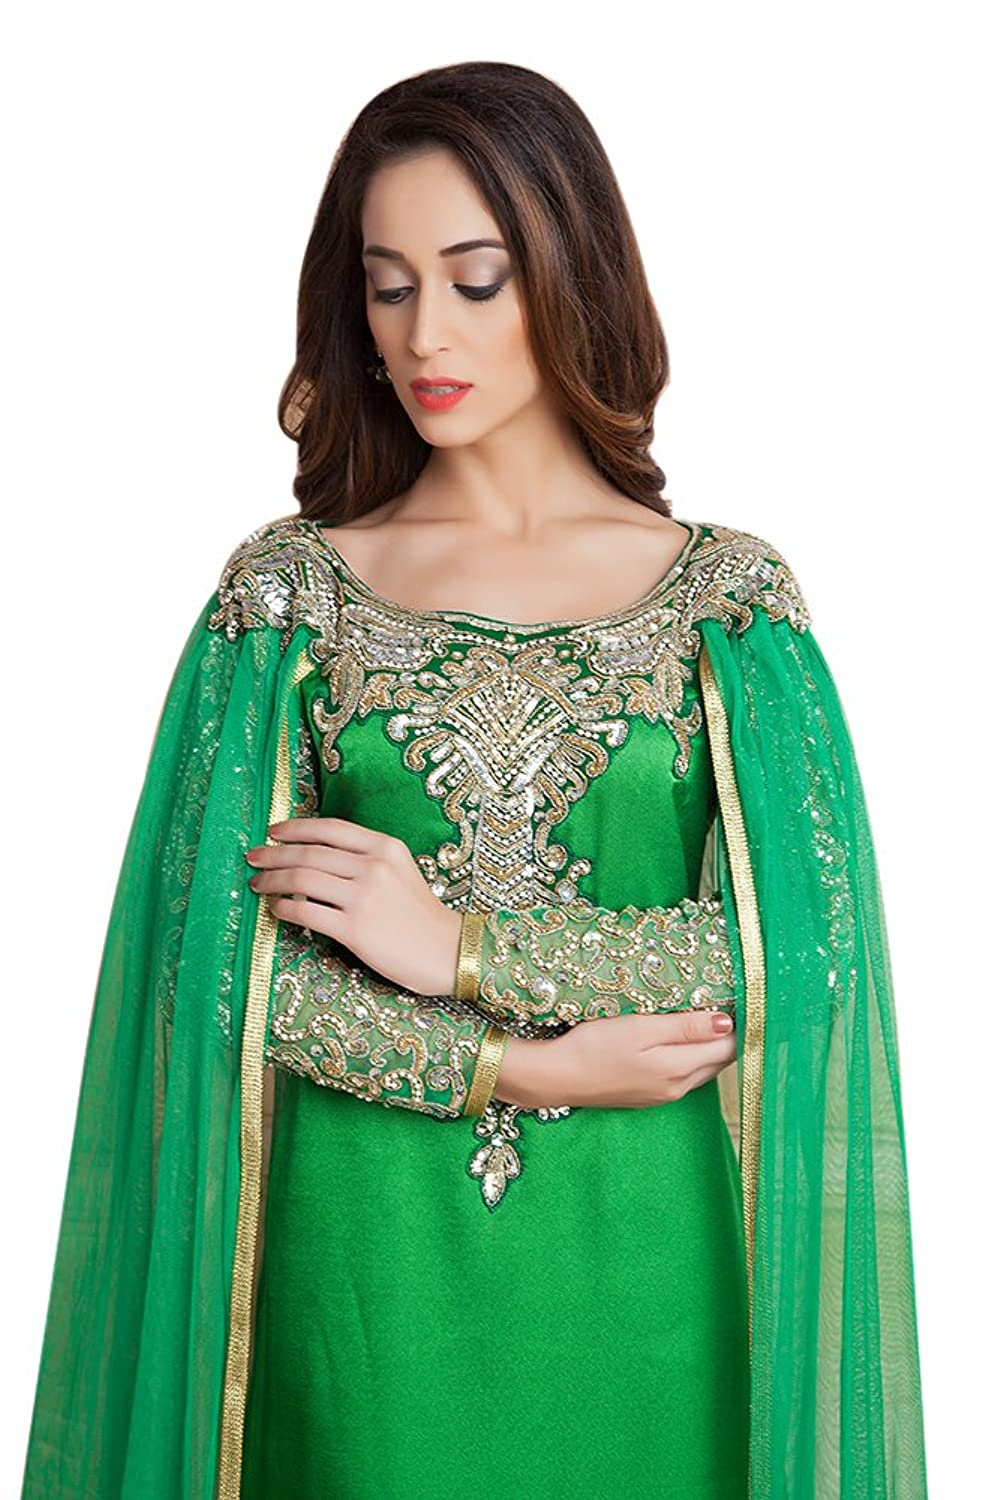 Kolkozy Fashion Women's Designer Handmade Arabic Long Sleeve Wedding Caftan